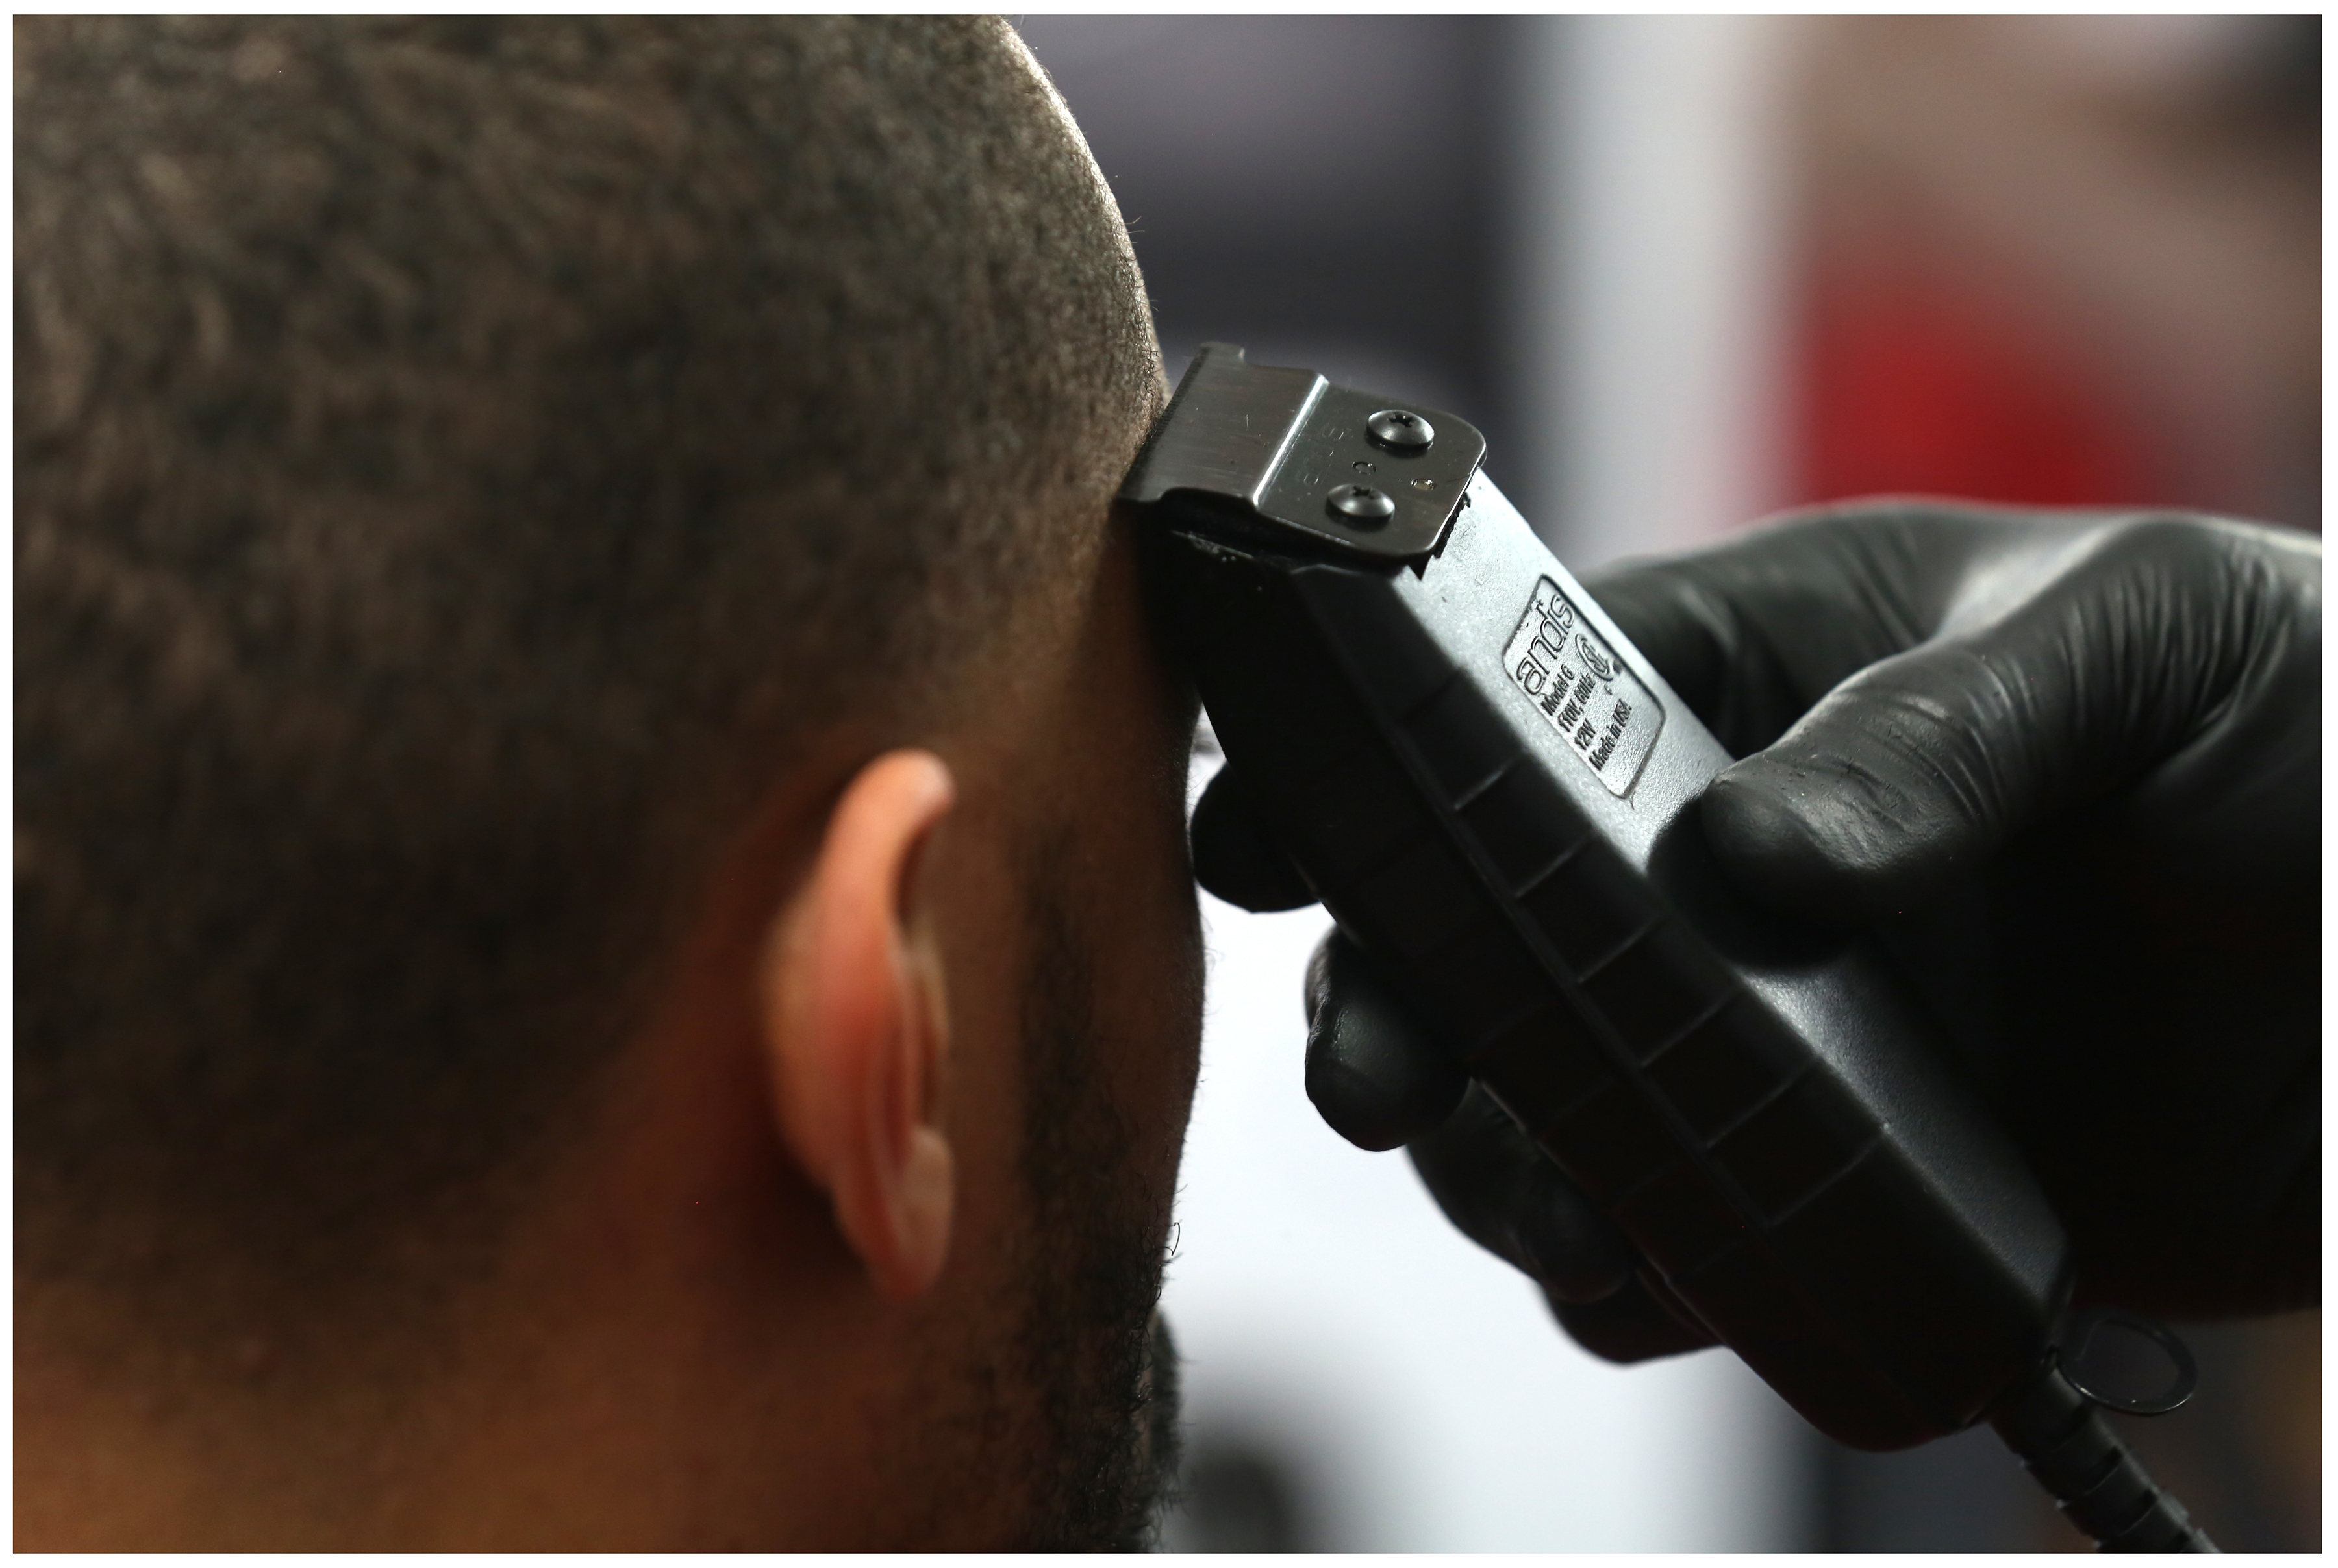 Coron Williams, a star player with The Edge basketball team, gets  his hair trimmed. (Paul Daly)